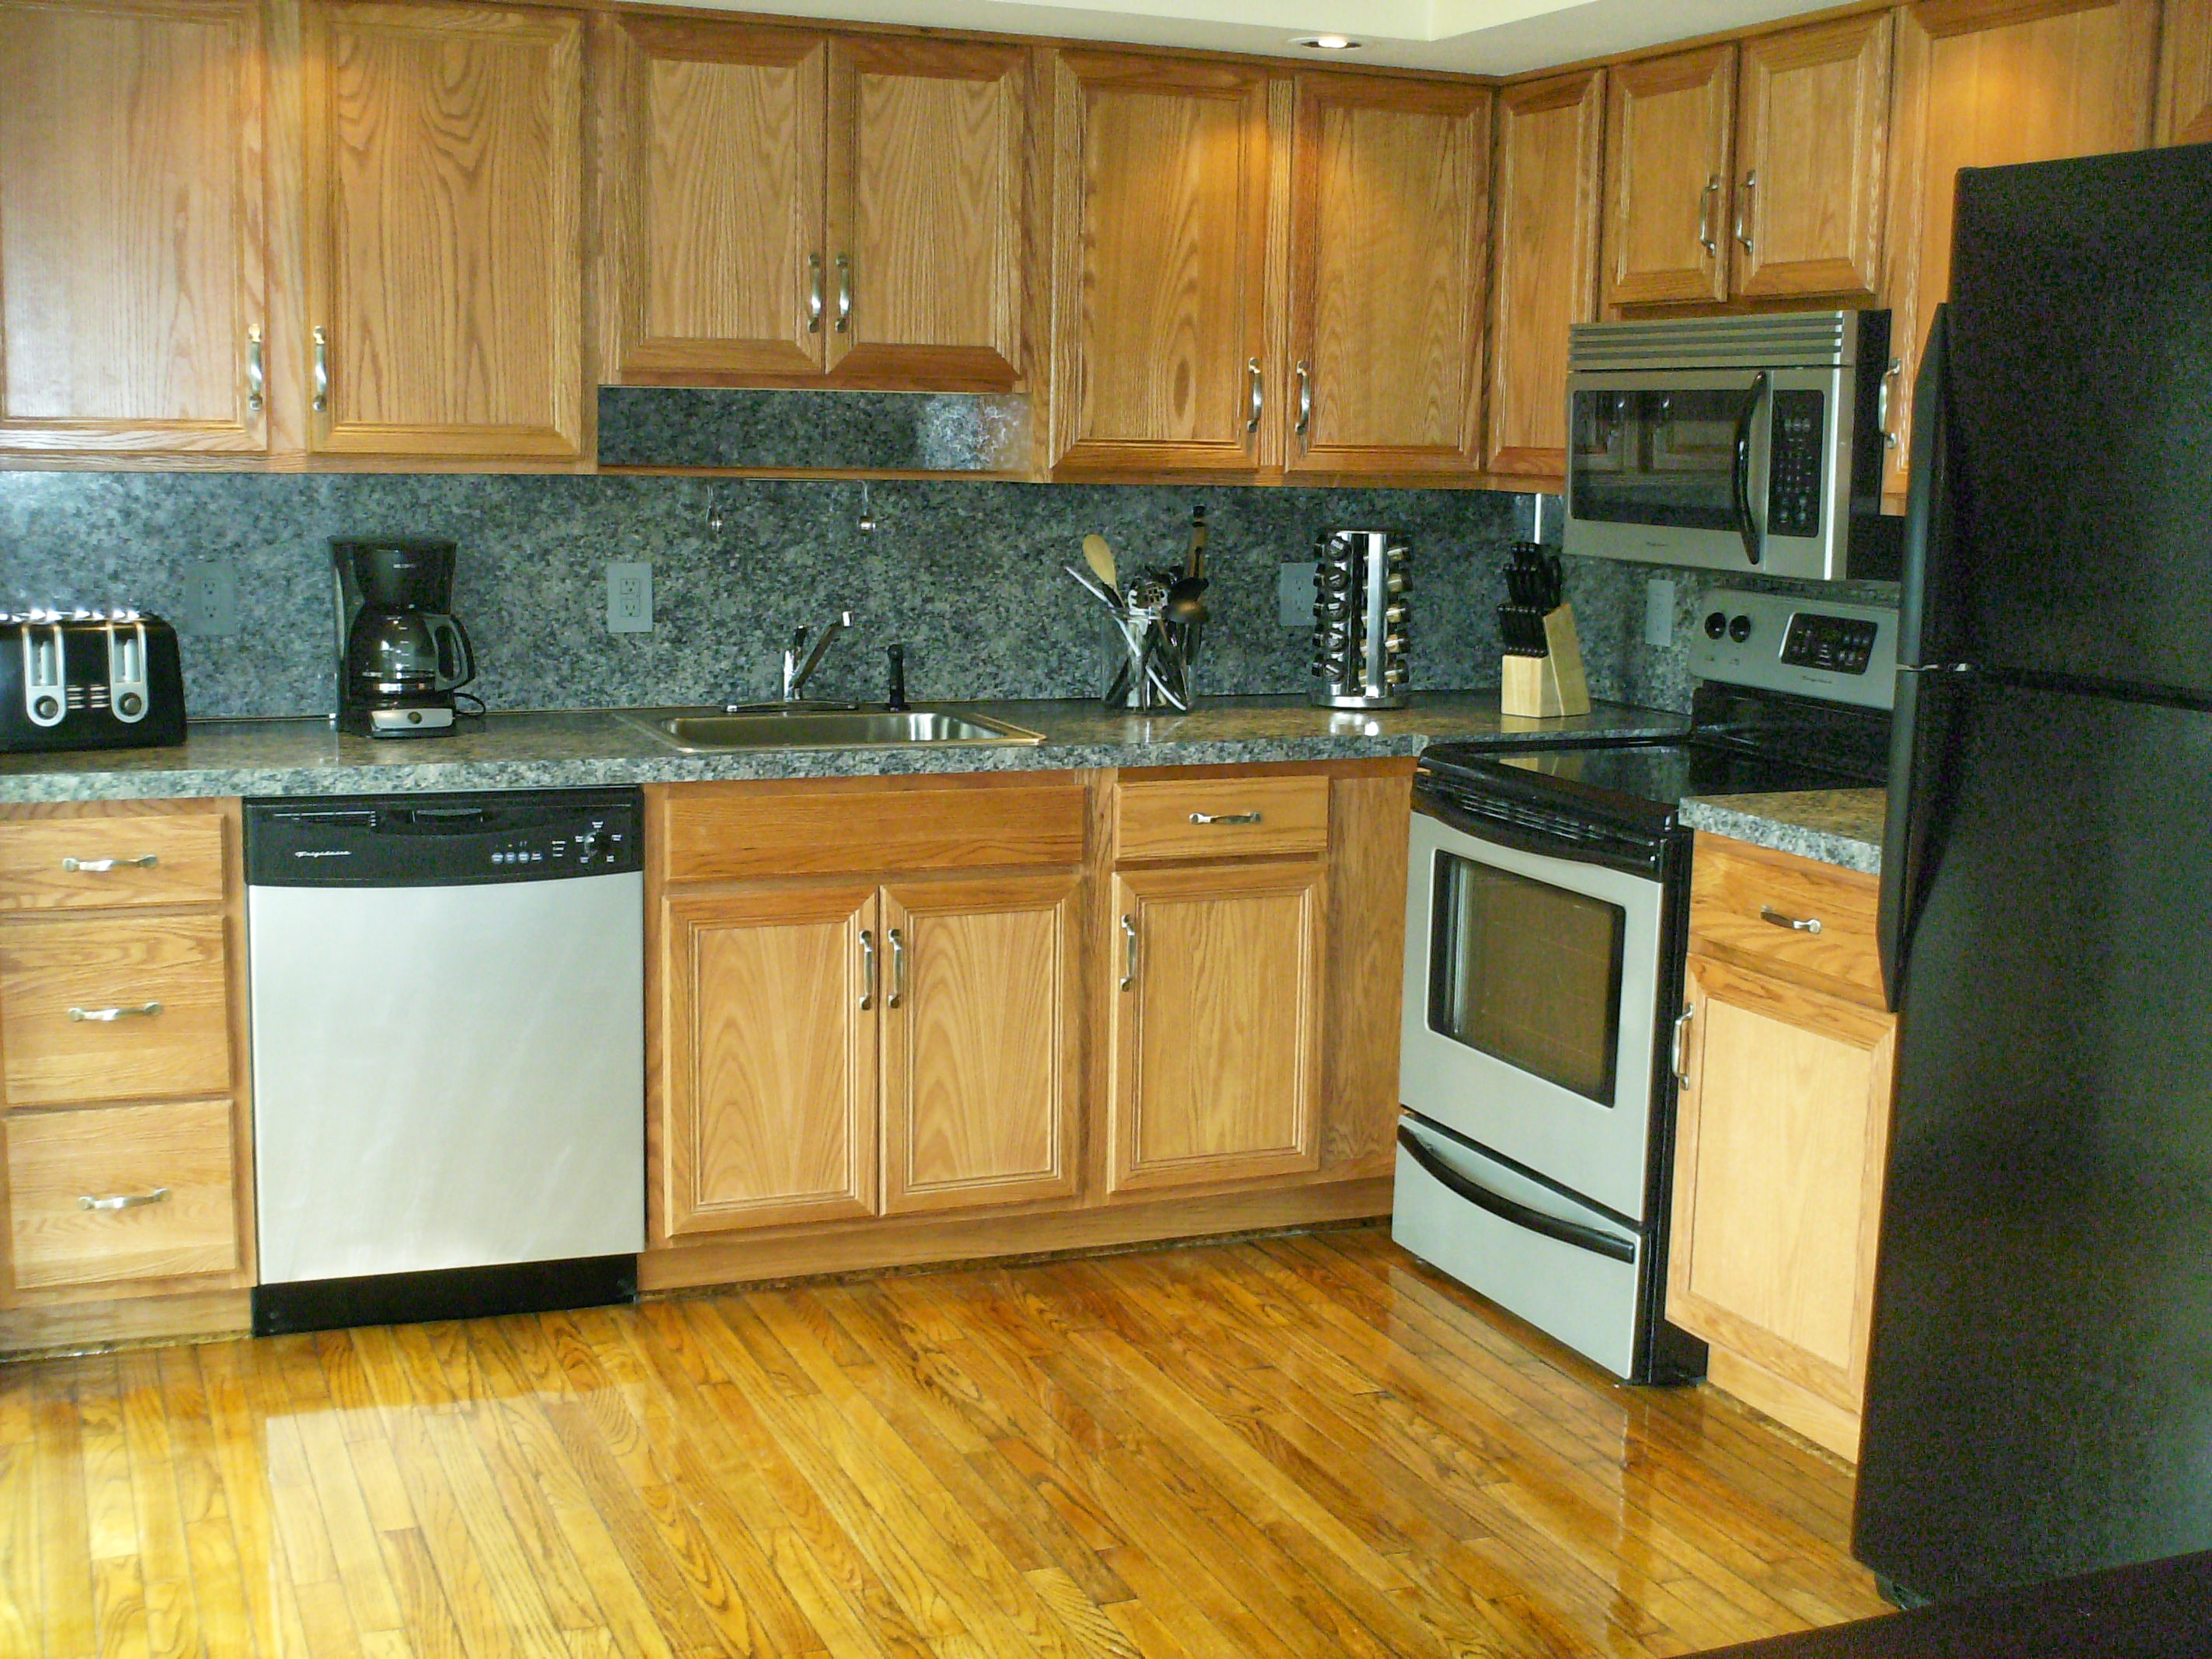 kitchen flooring wood 535 lakeview lakefront with inground 13080 find 1723